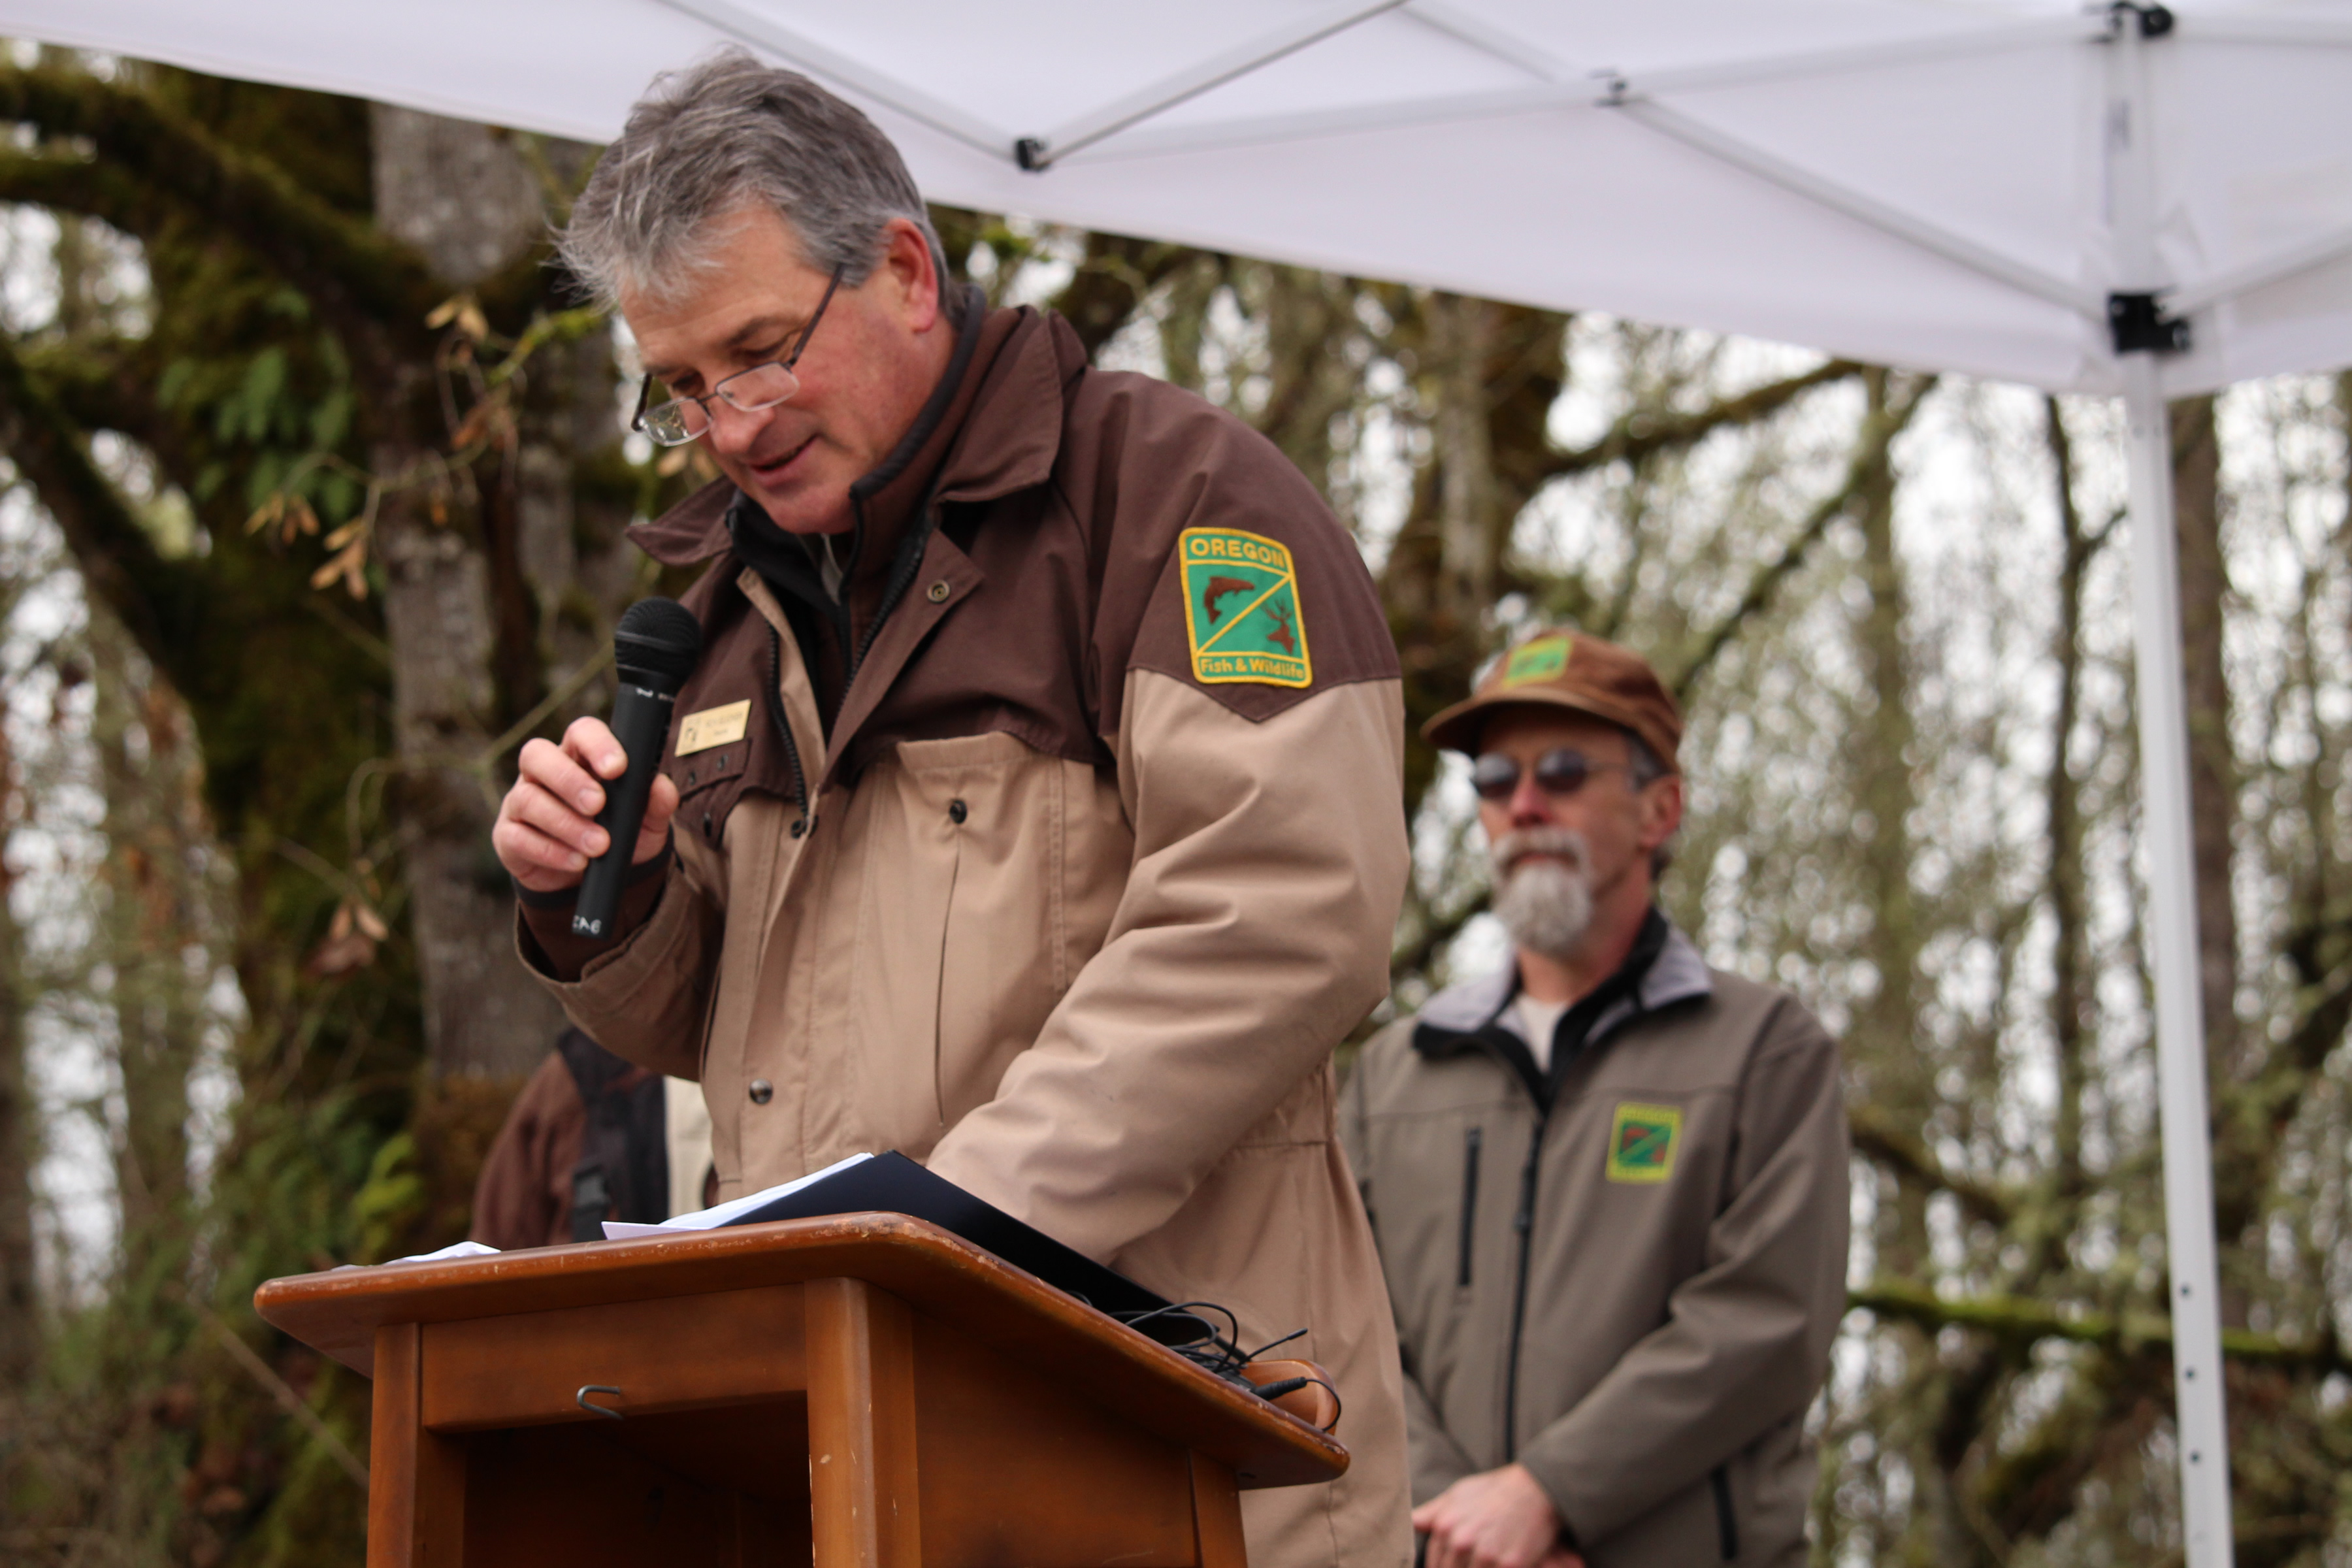 Roy elicker oregon department of fish and wildlife for Oregon department of fish and wildlife